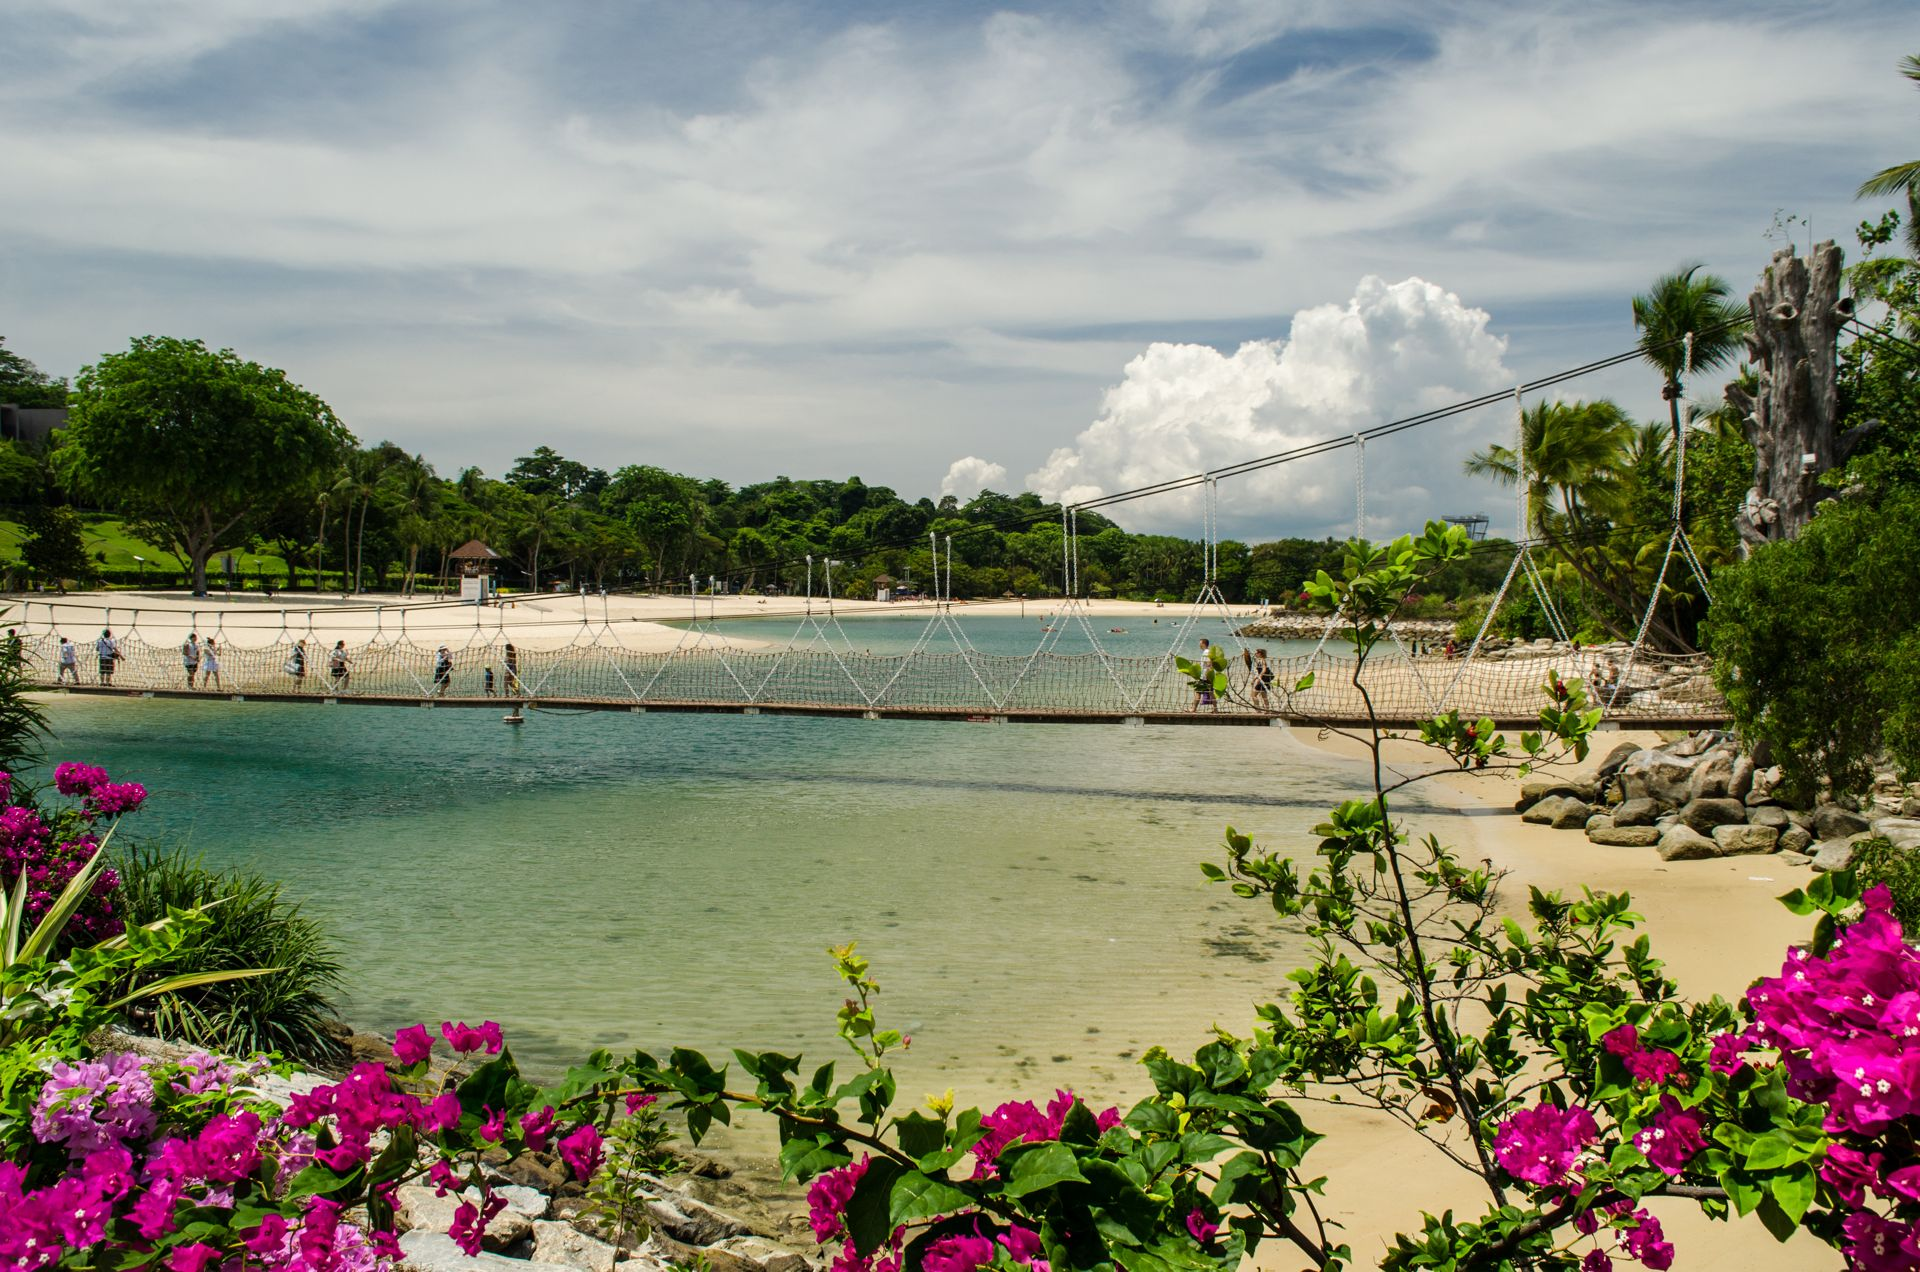 singapore sentosa, sentosa beach, sentosa flowers beach, best sentosa picture, sunny day at sentosa, sentosa island, where to fly drone at singapore, singapore drone guidelines, best drone places singapore, singapore laws, singapore regulations